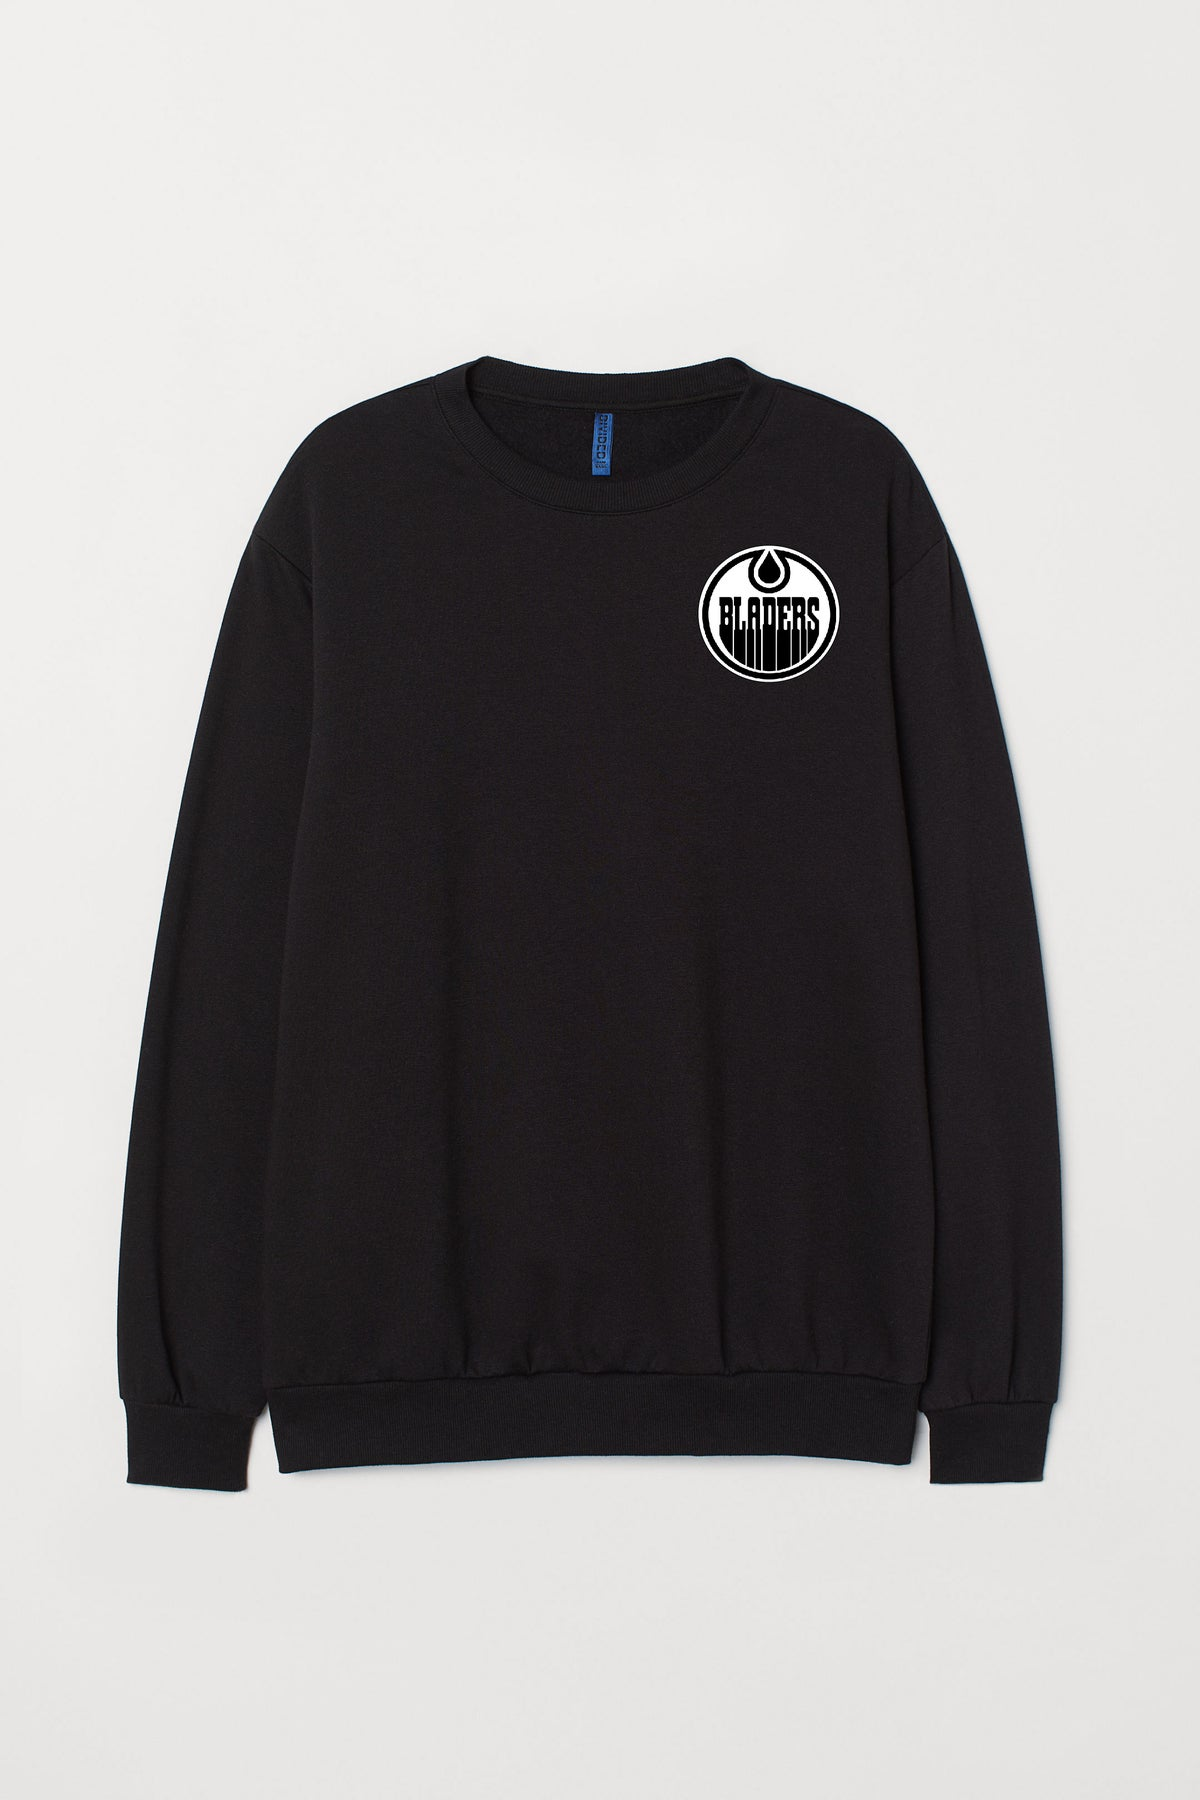 Image of B&W Bladers Crewneck Sweater - Pre-Order